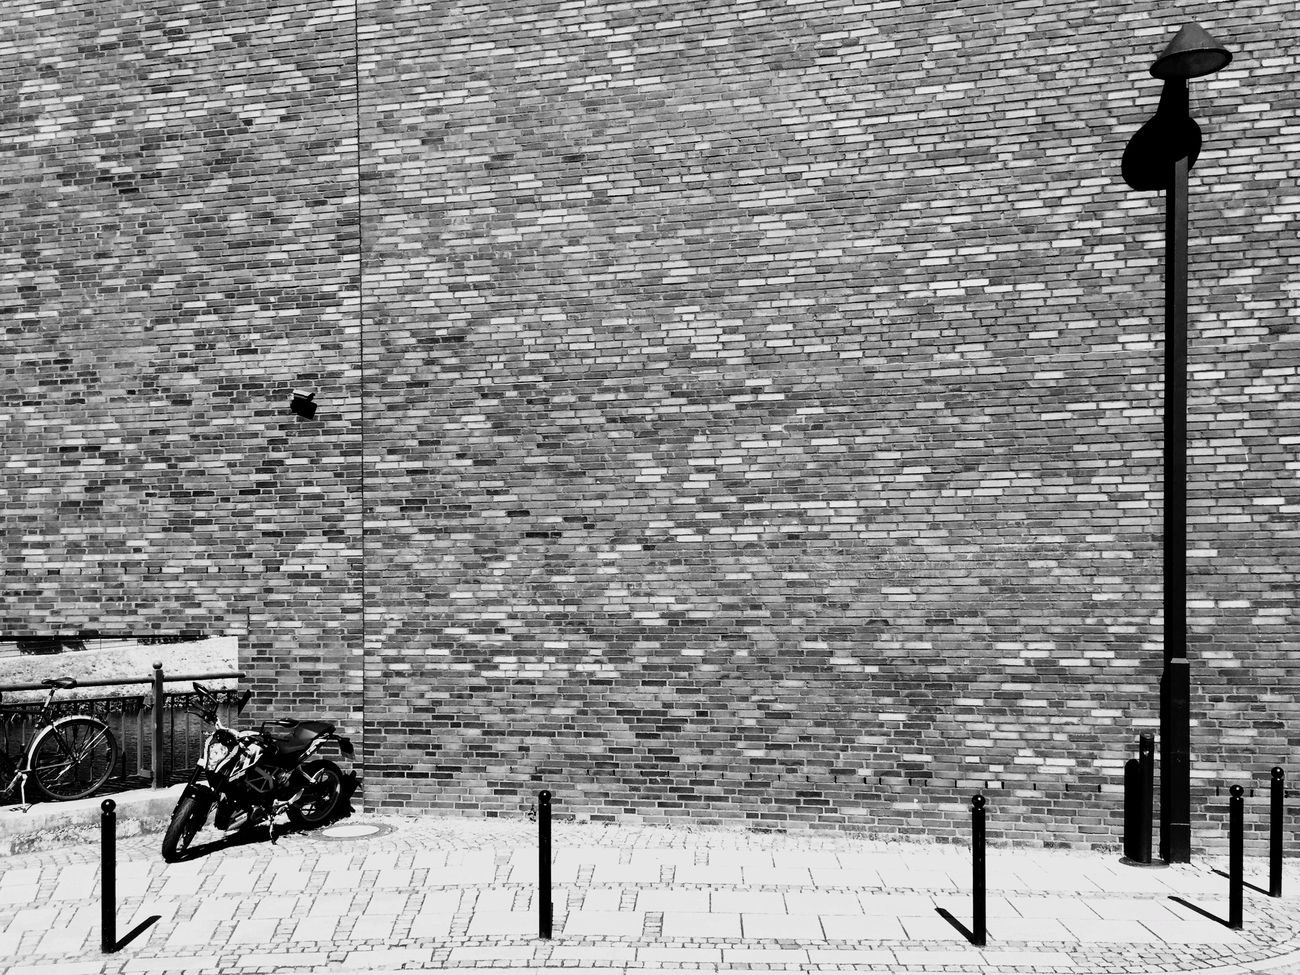 the wall. Bnwphotography Hometown Shadows & Light Bremen Bremen City Teerhof EyeEm Best Shots - Black + White